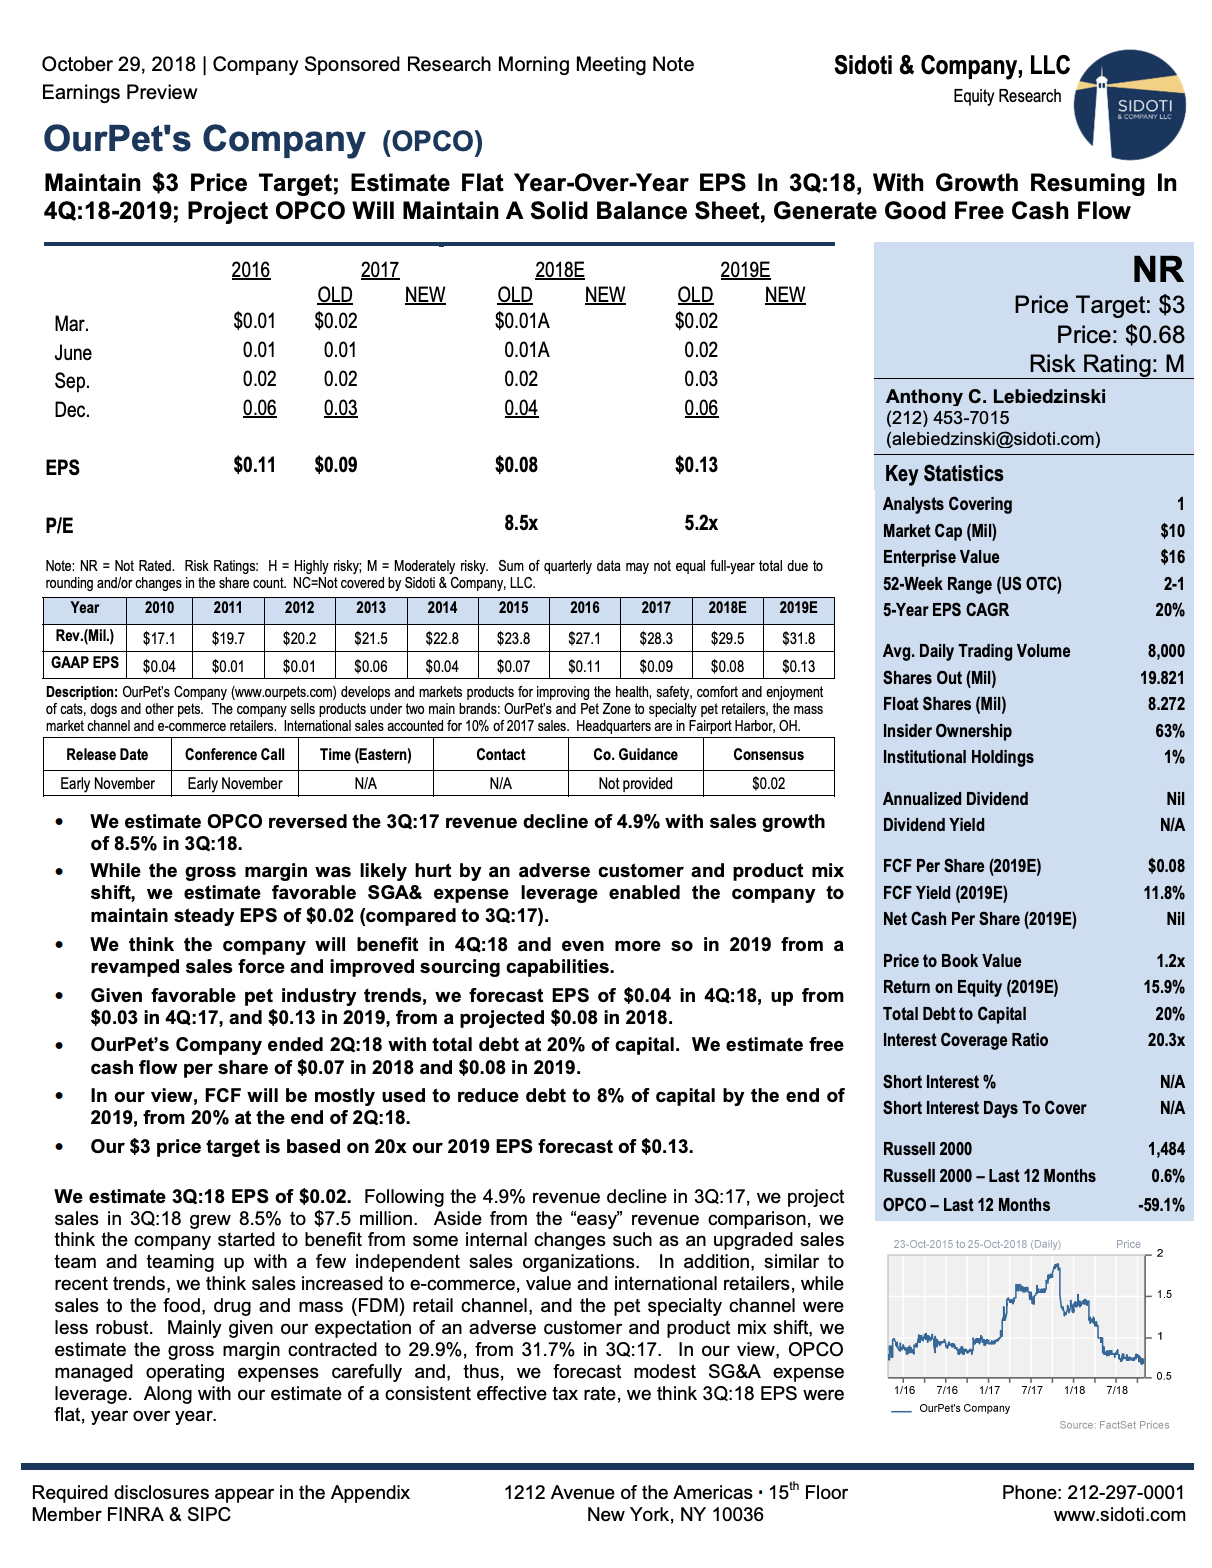 Earnings Preview: October 29, 2018